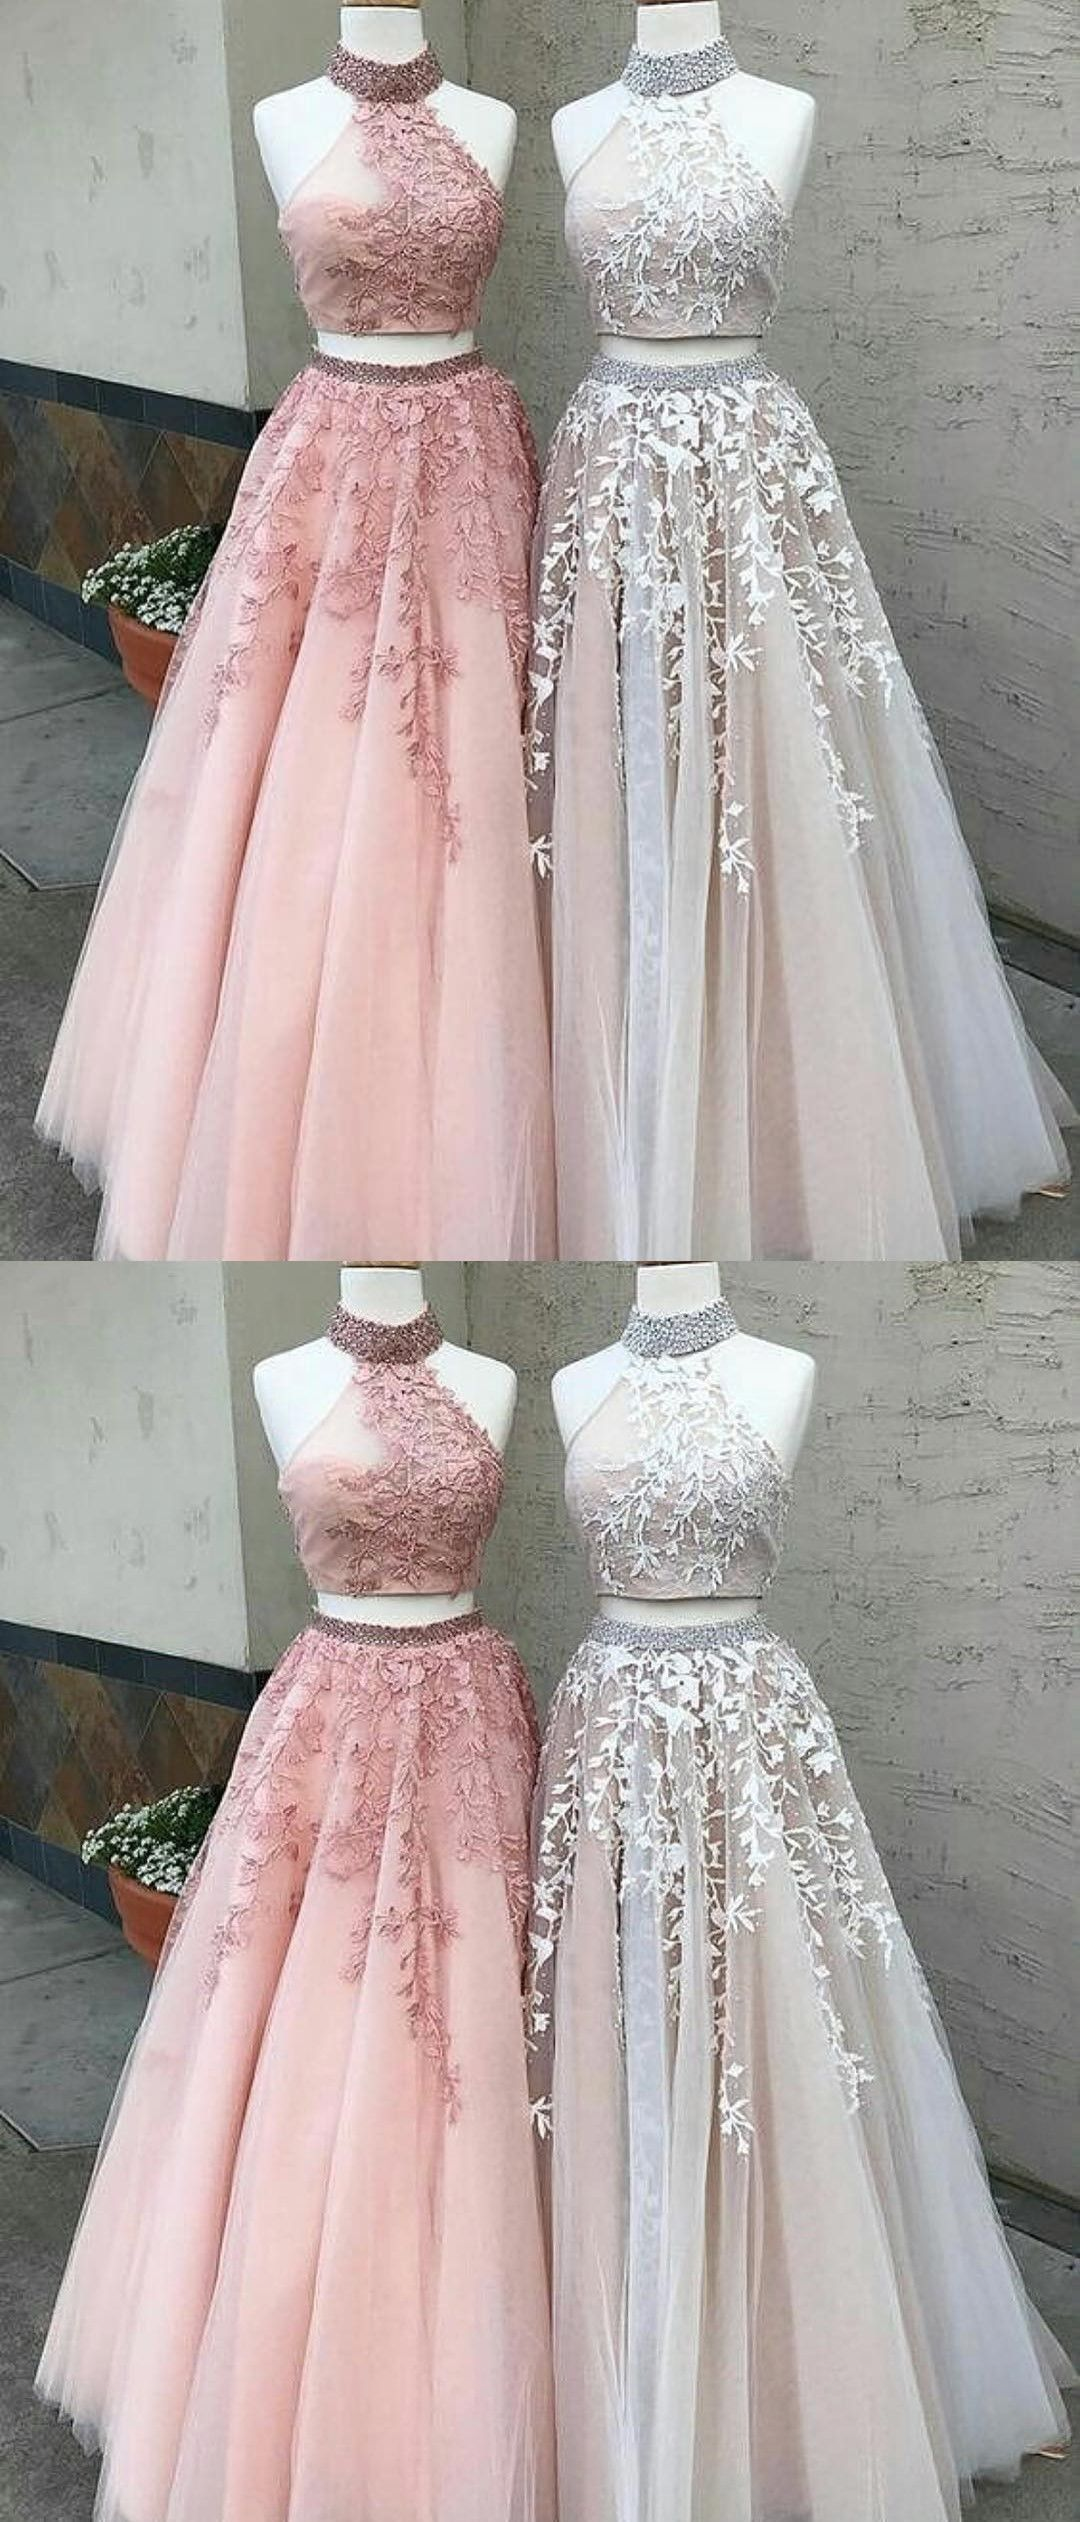 Elegant pieces prom party dresses with appliques pink fashion